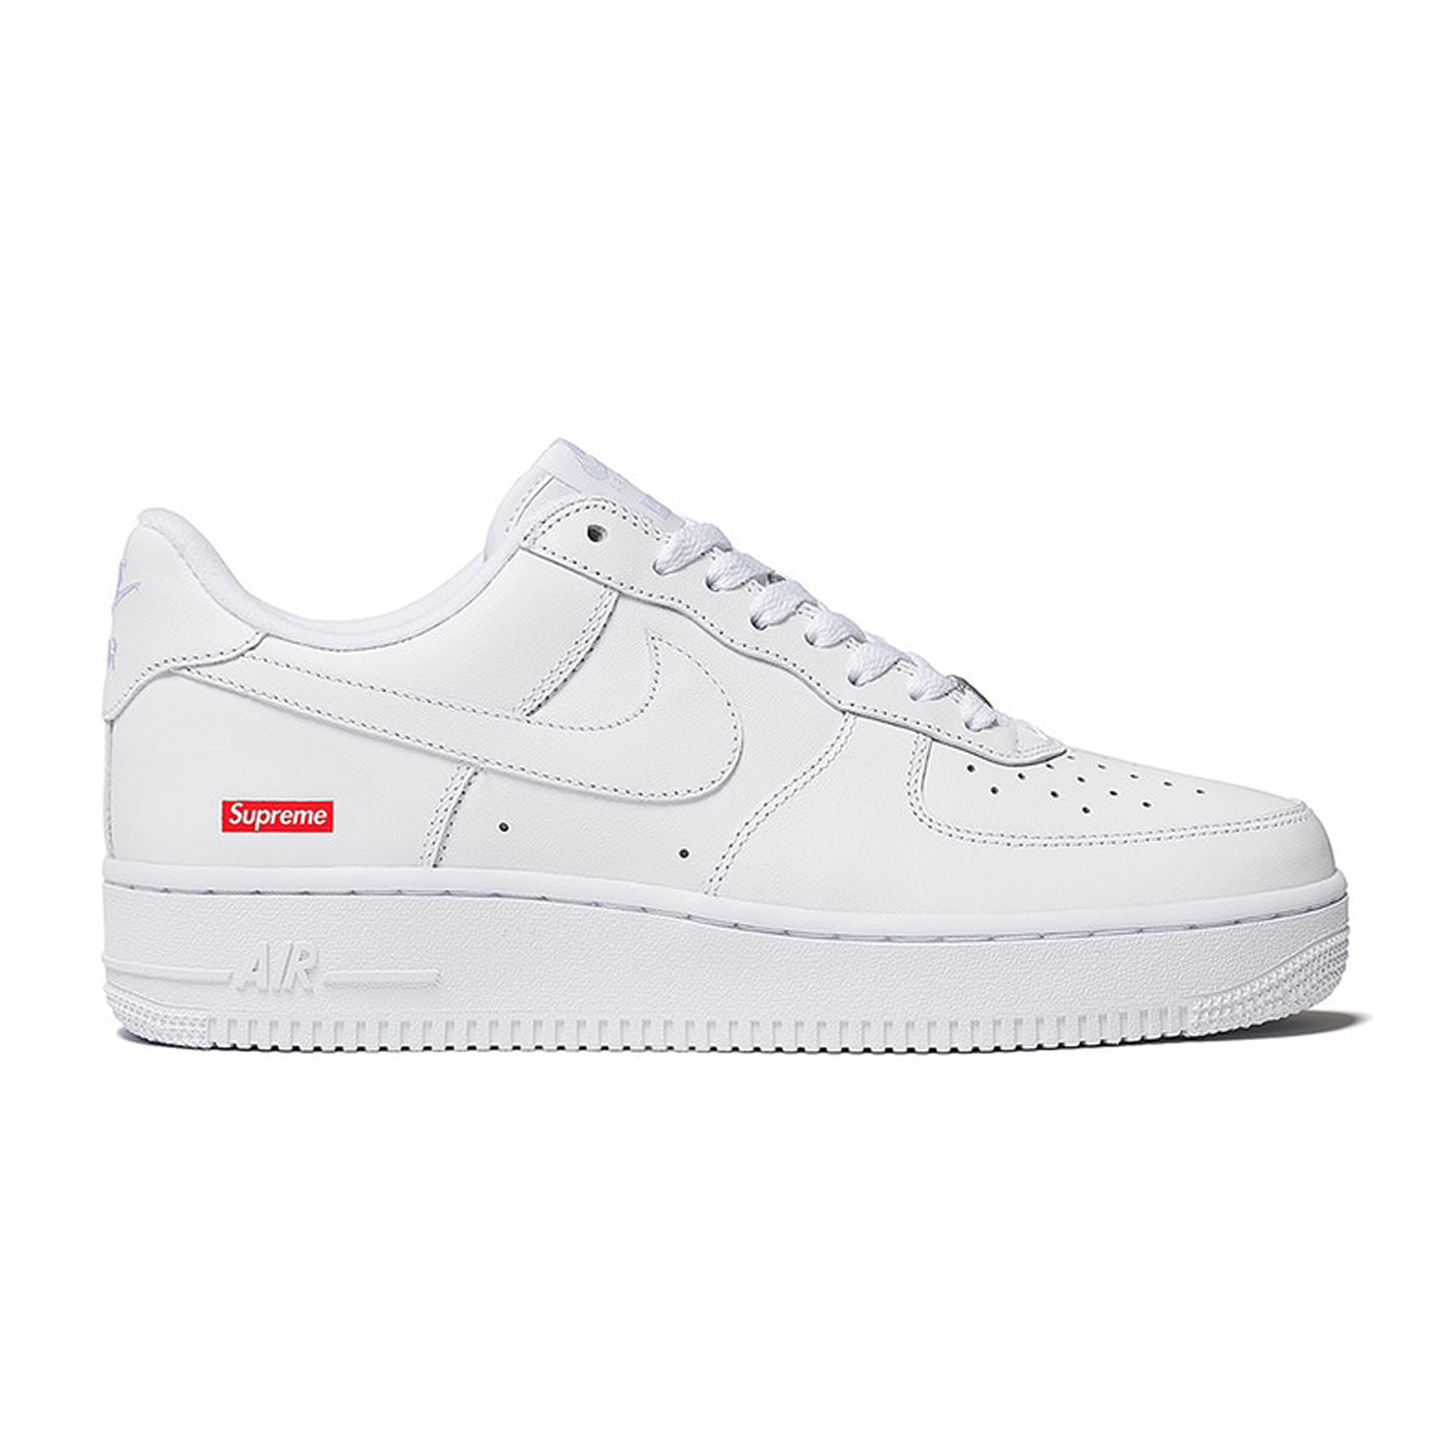 Air Force 1 Low Supreme White